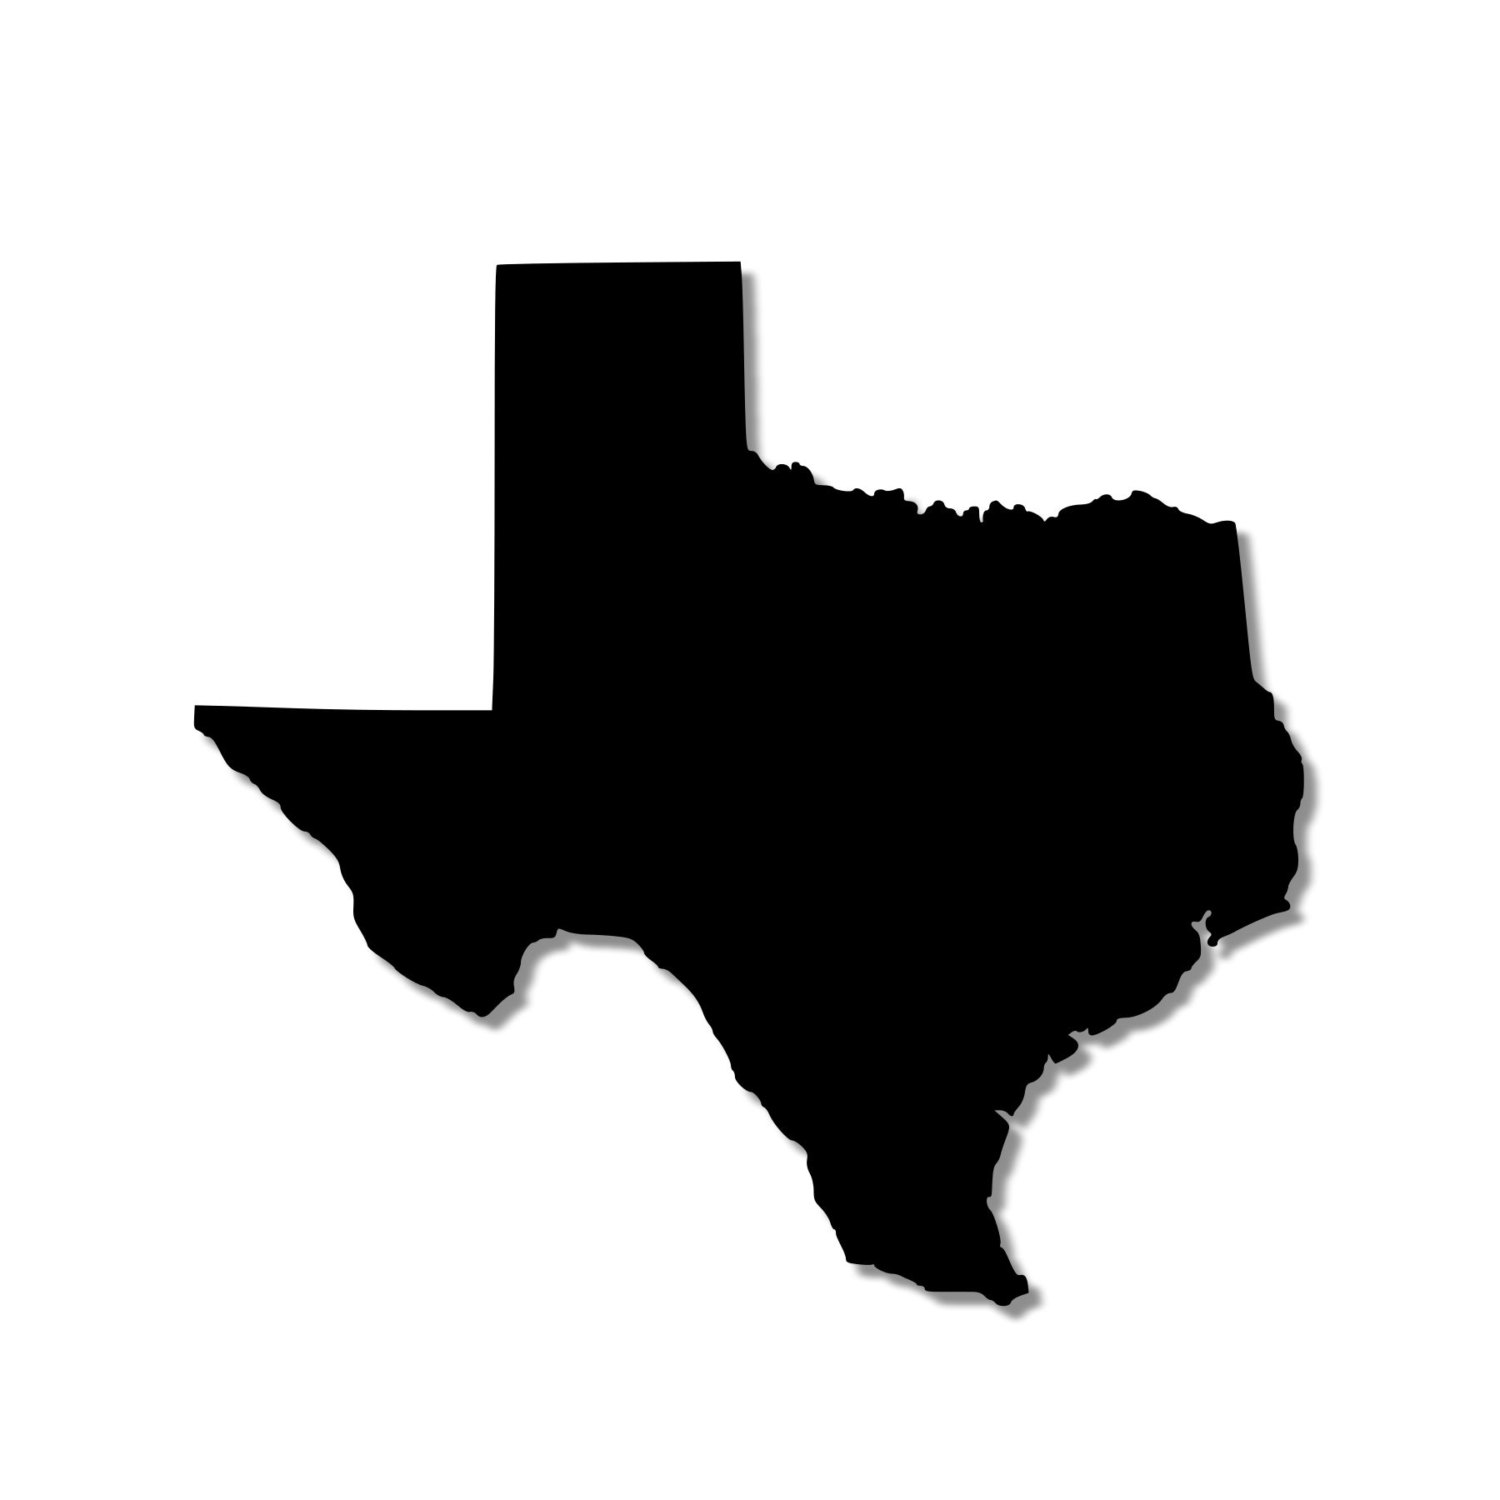 silhouette texas texas decals lone star state silhouette custom decal for texas silhouette